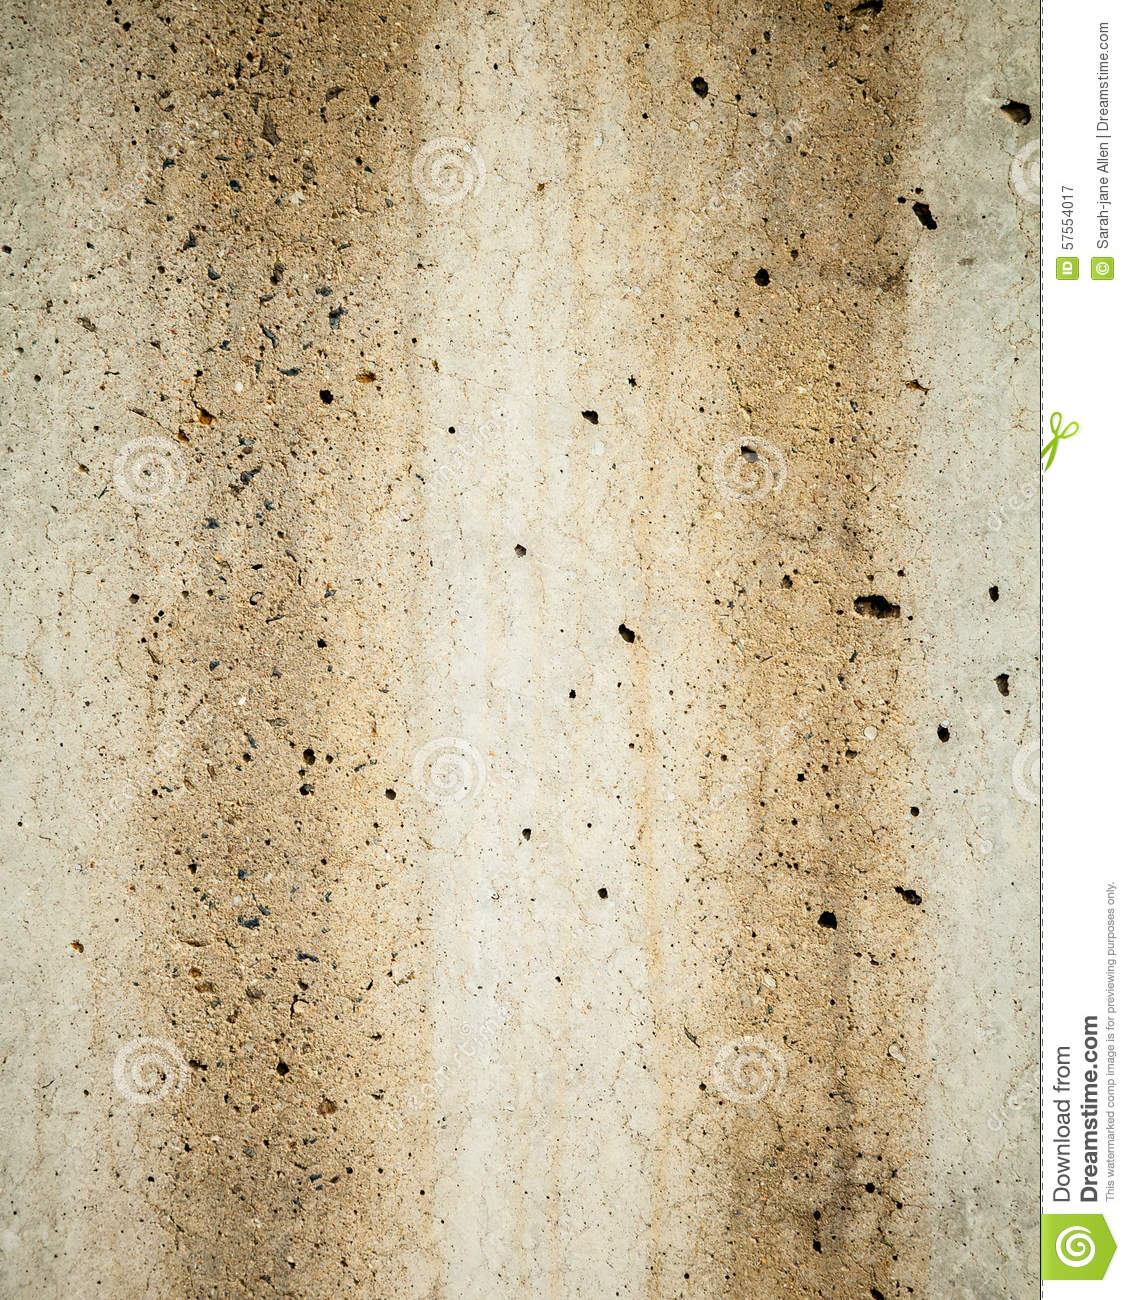 Rust Cement Wall : Textured background of two rust stains down grey concrete